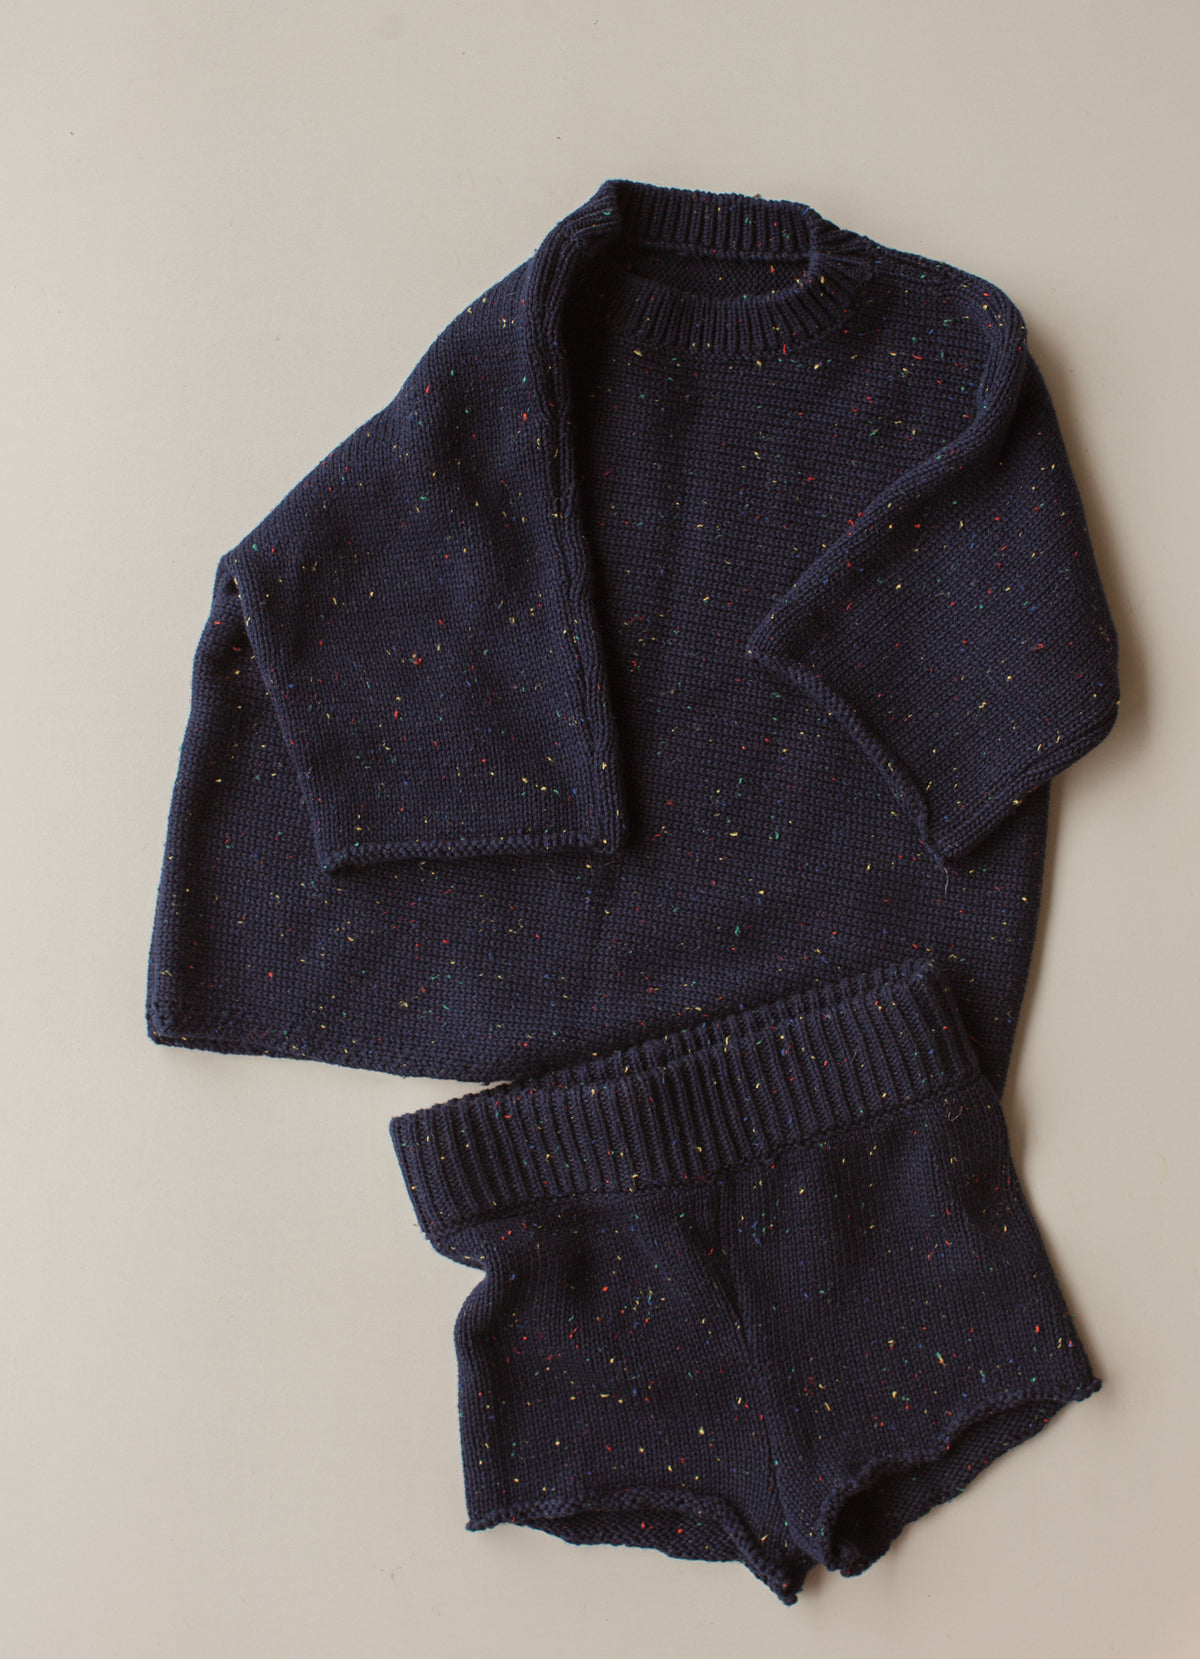 Seasonal Knit Tee - Navy Sprinkle